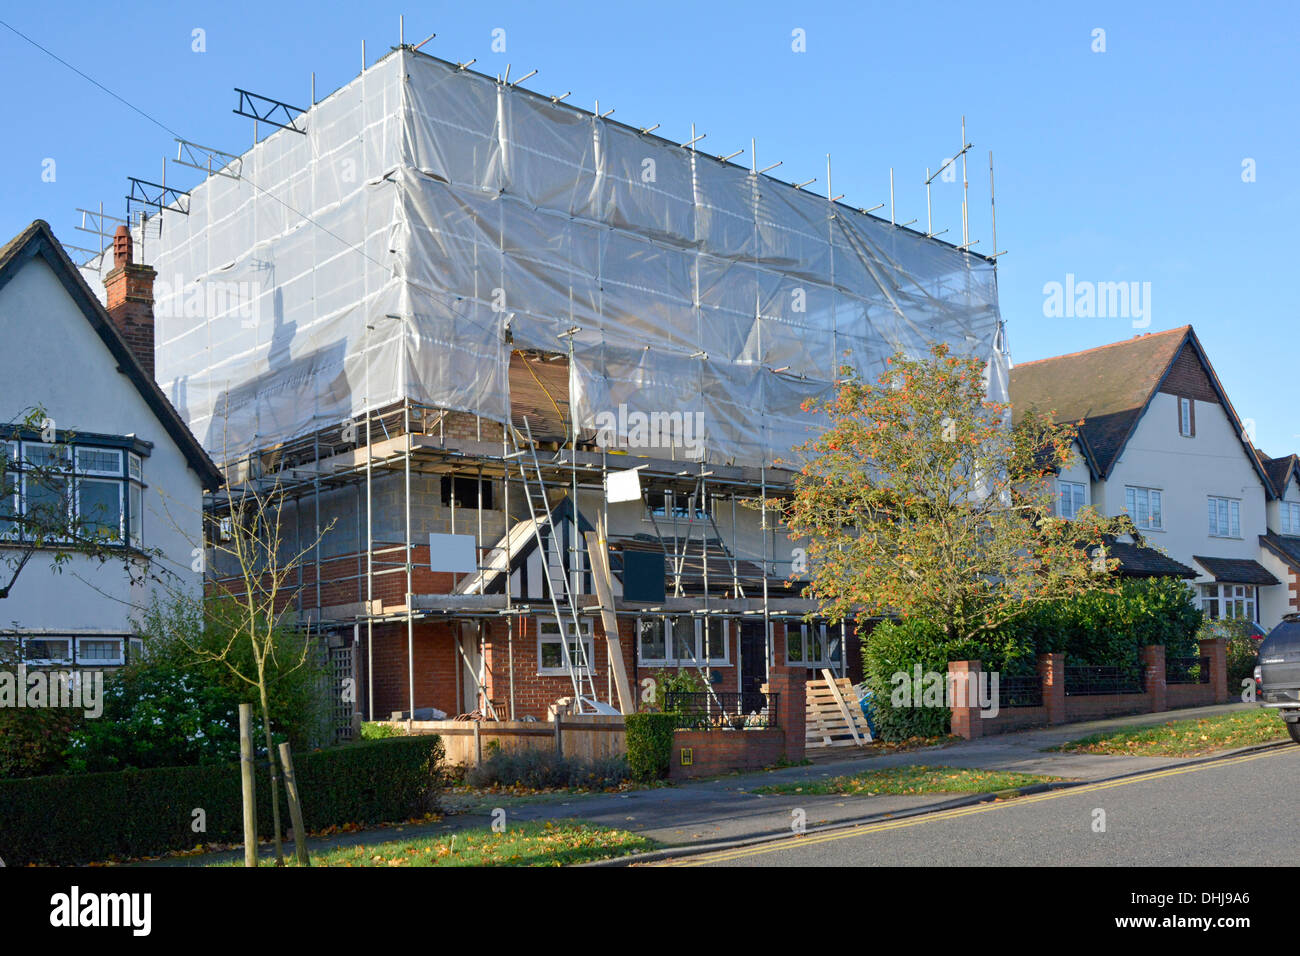 Detached house cocooned inside protective plastic sheeting during structural alterations - Stock Image